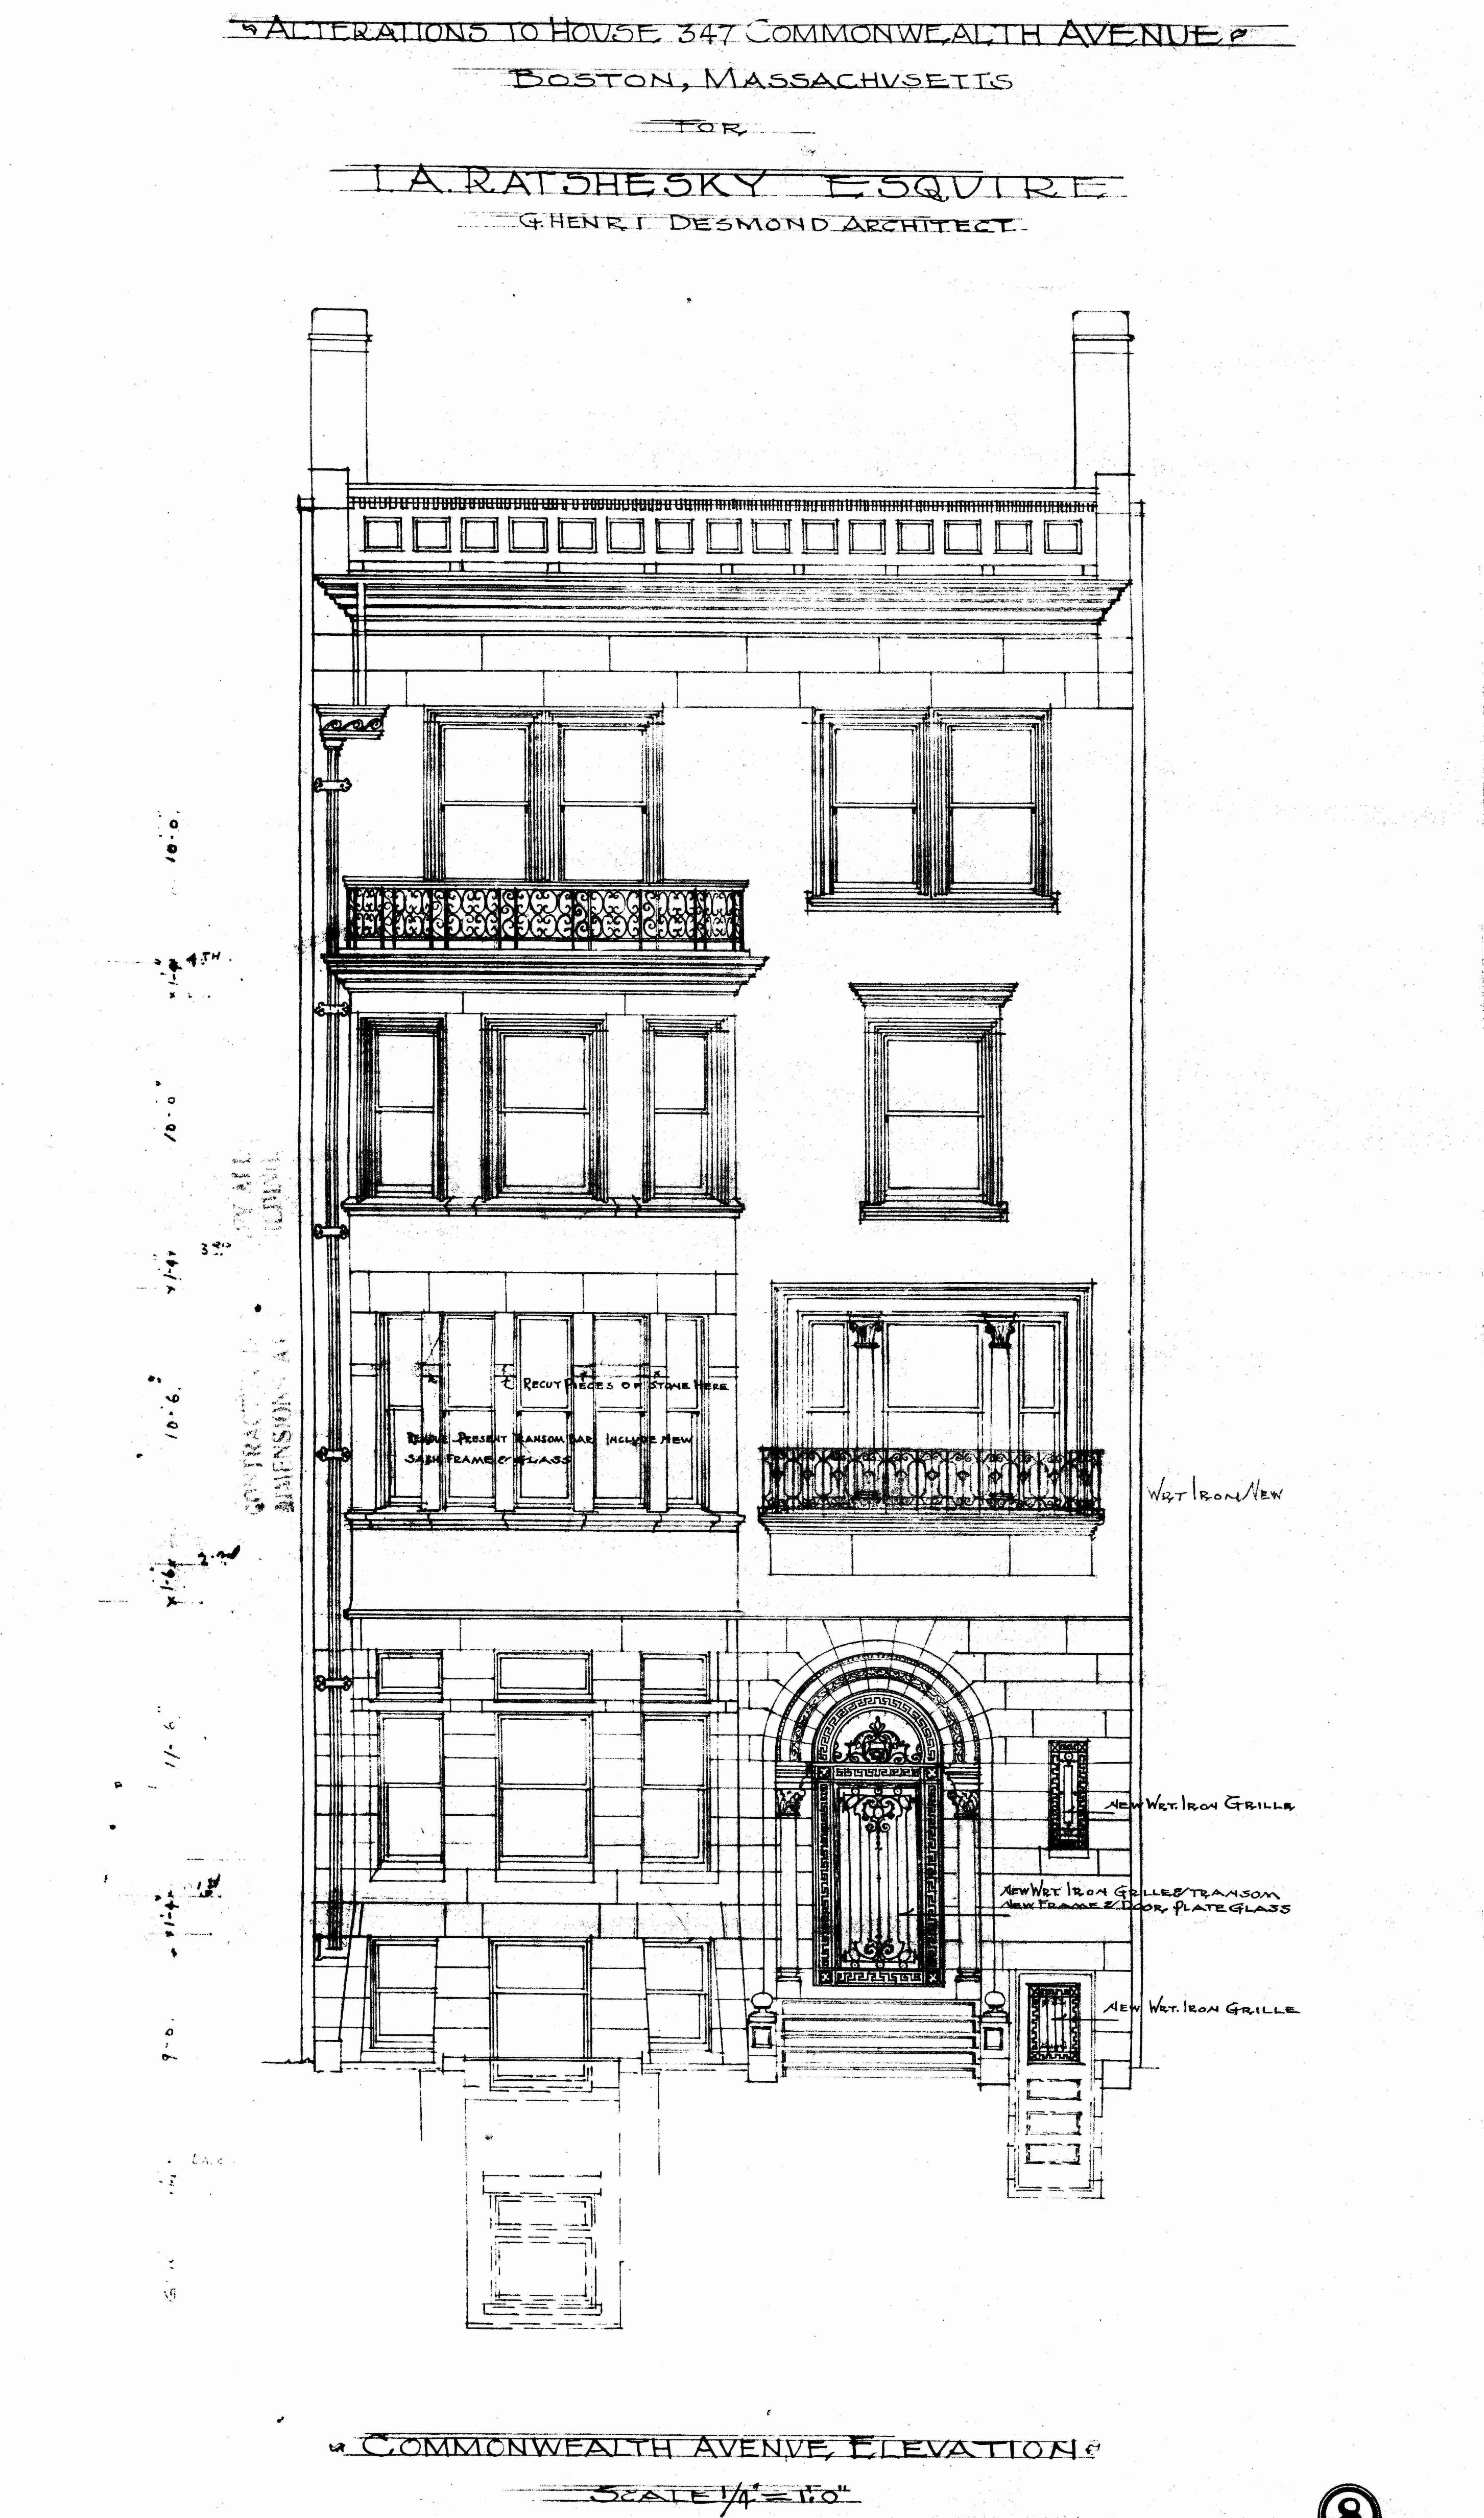 Architectural plans 347 commonwealth remodeling 1912 back comm 347 front elevation 1912 bpl blueprint bw malvernweather Image collections